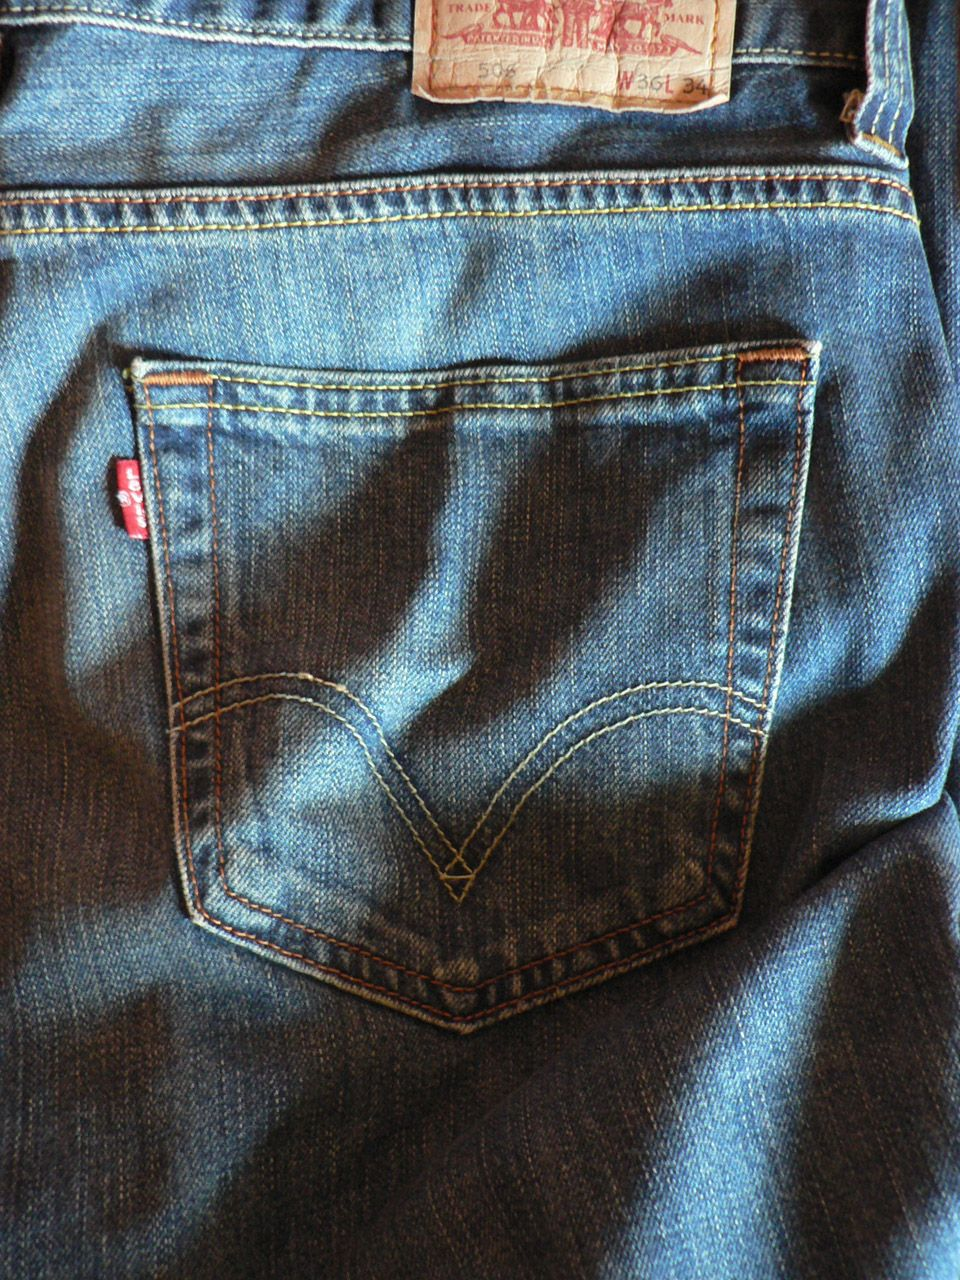 ecommerce levi strauss key reasons for the failure of its b2c levi s 506 jeans